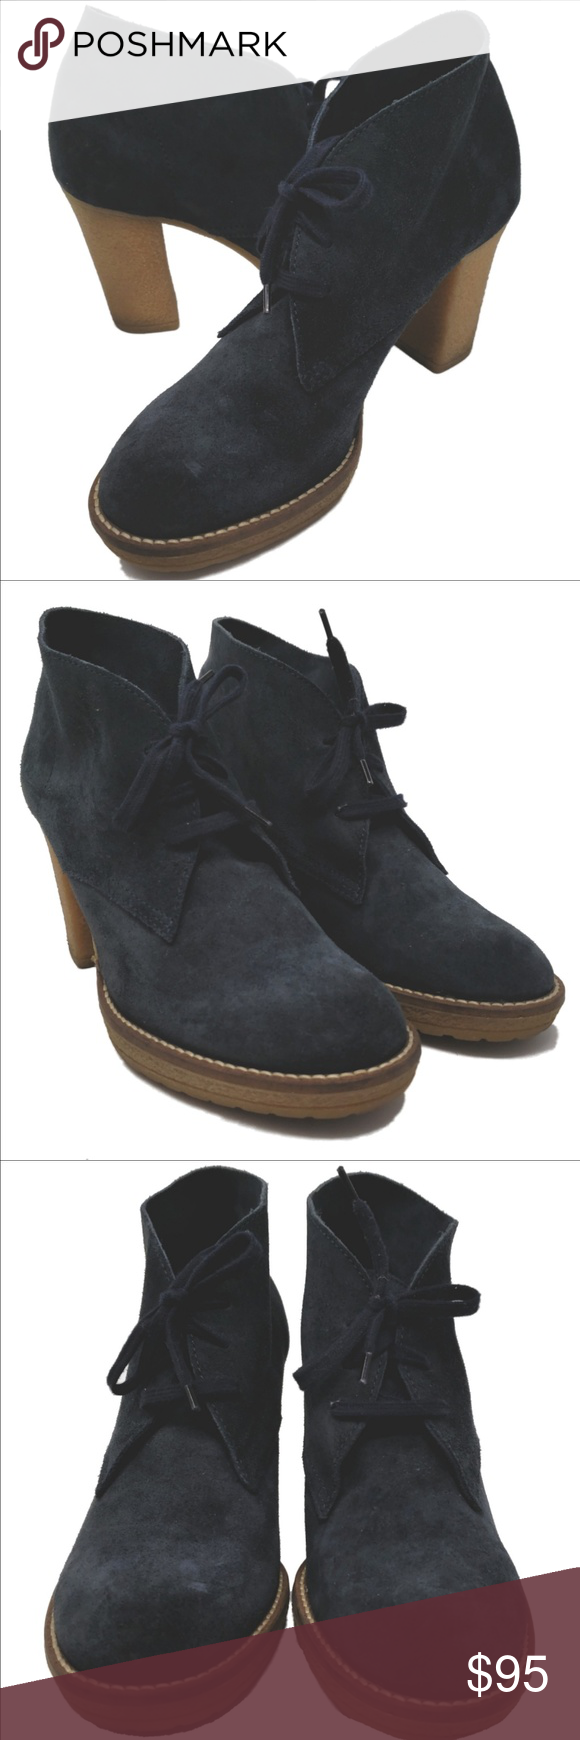 a4336185c35 J Crew MacAlister Suede High Heel Ankle Boot SZ 8 J. Crew blue